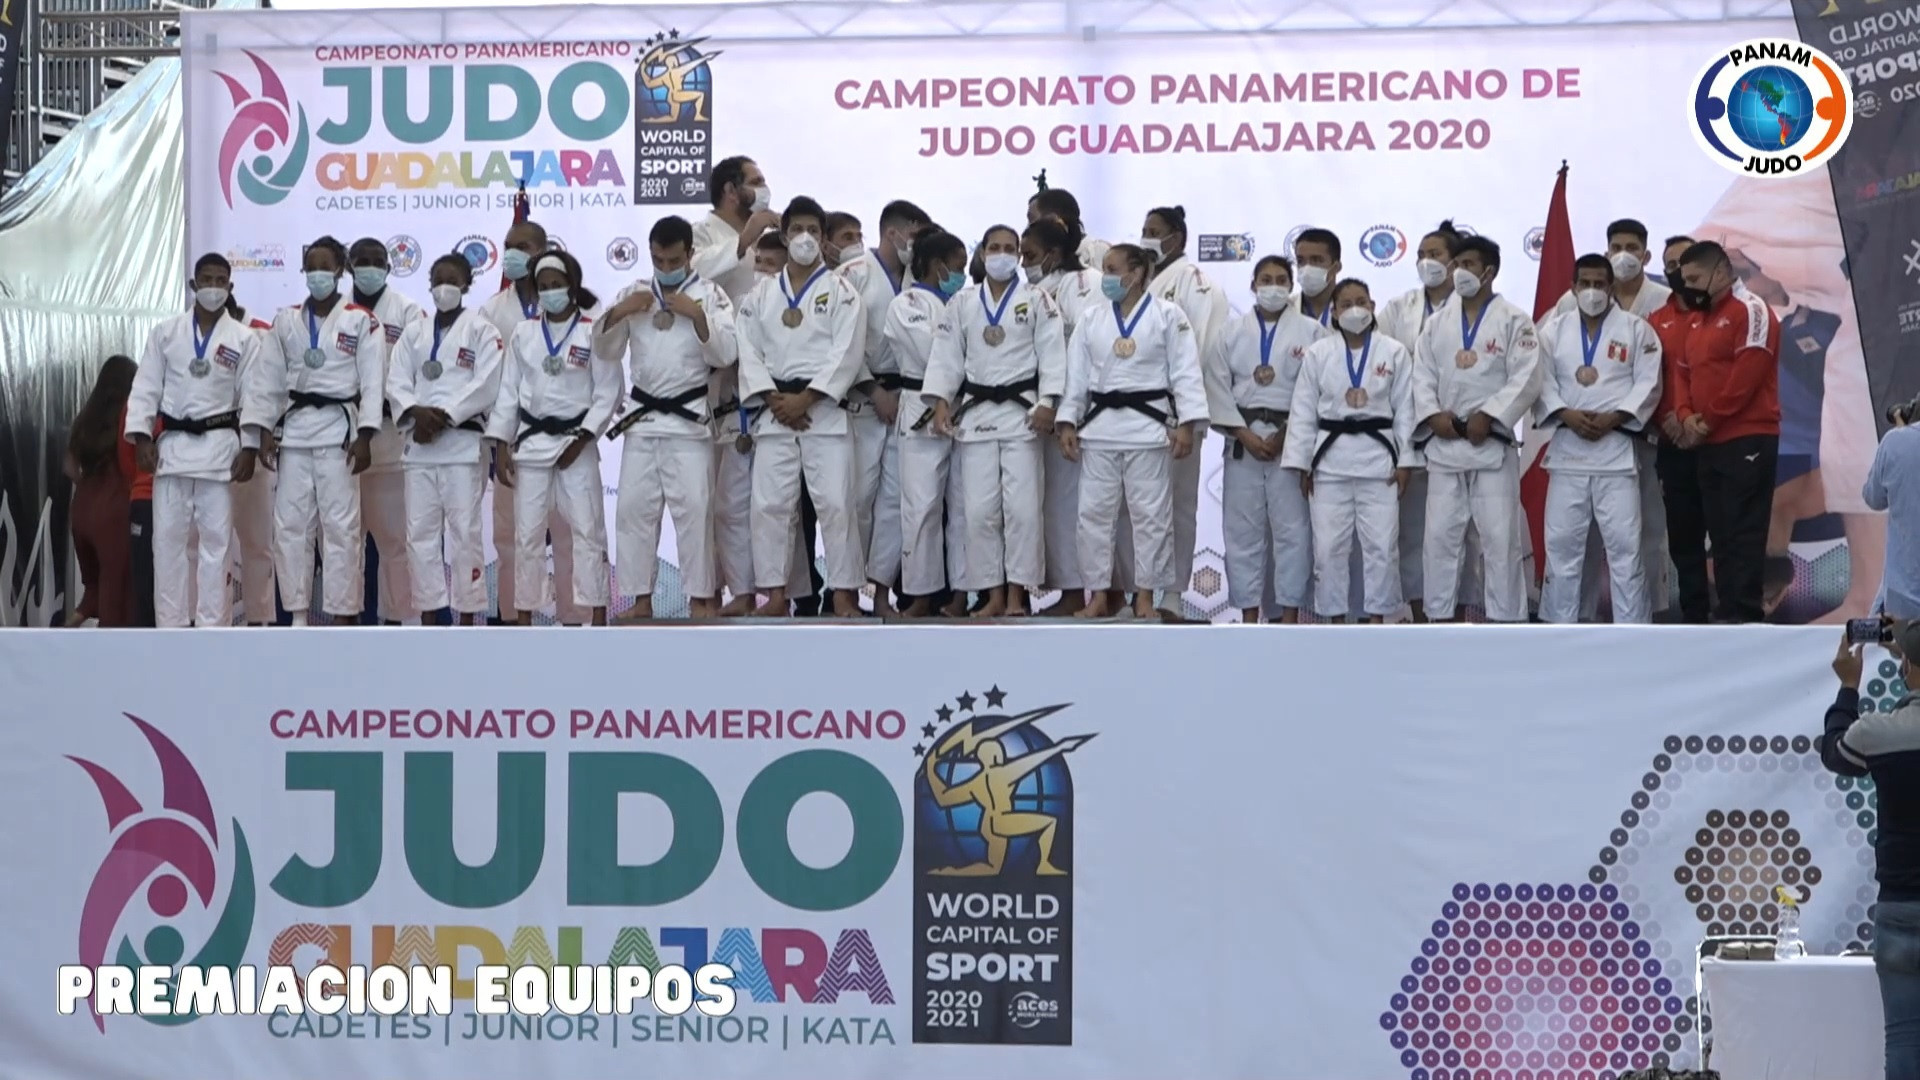 Pereira wins tie-breaker as Brazil clinch final gold at Pan American Judo Championships